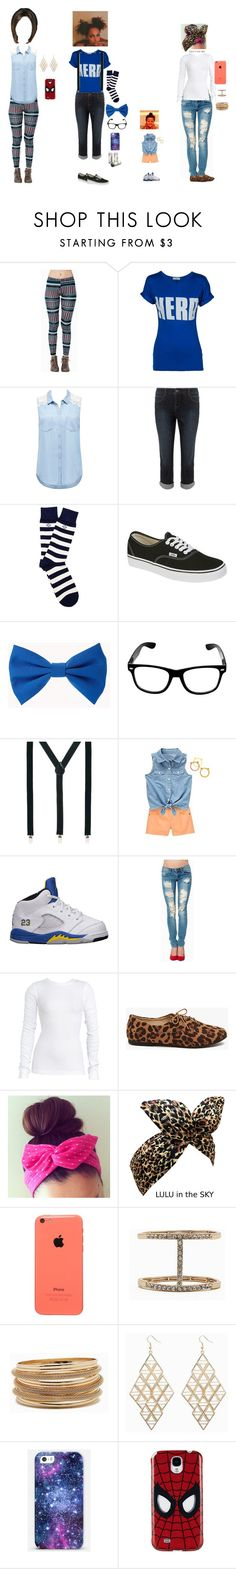 """""""Today's Outfits16"""" by kenyapeters ❤ liked on Polyvore featuring A'GACI, Forever New, Monsoon, Gant Rugger, Vans, Forever 21, ASOS, Retrò and Wet Seal"""